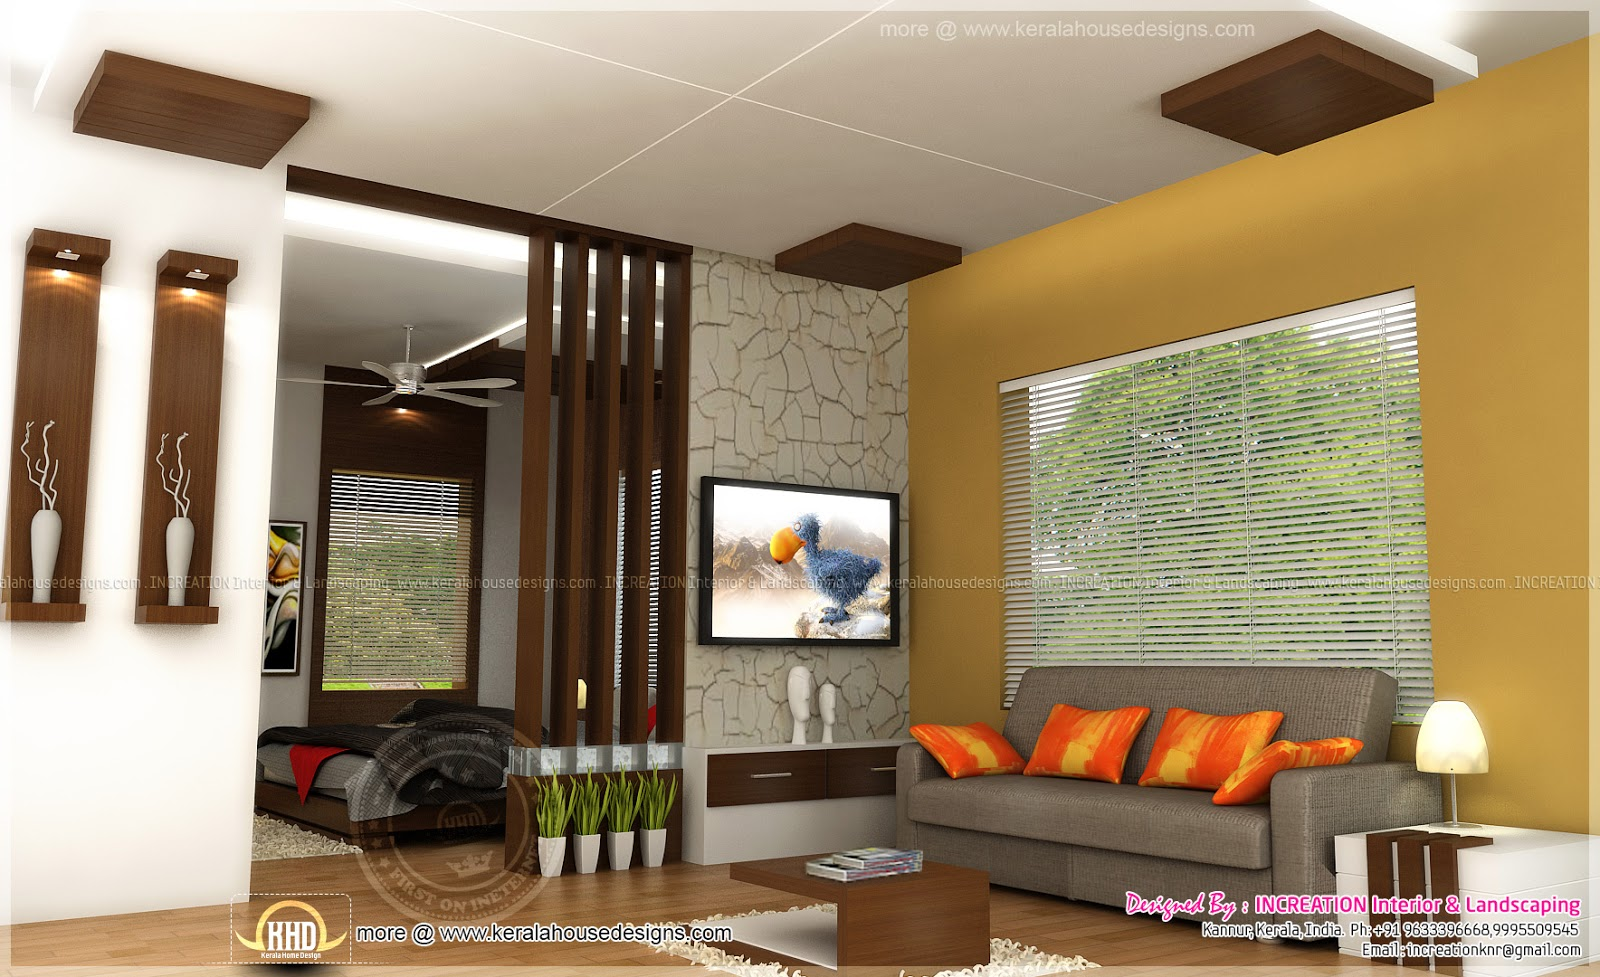 Interior designs from kannur kerala kerala home design for Home design 4u kerala